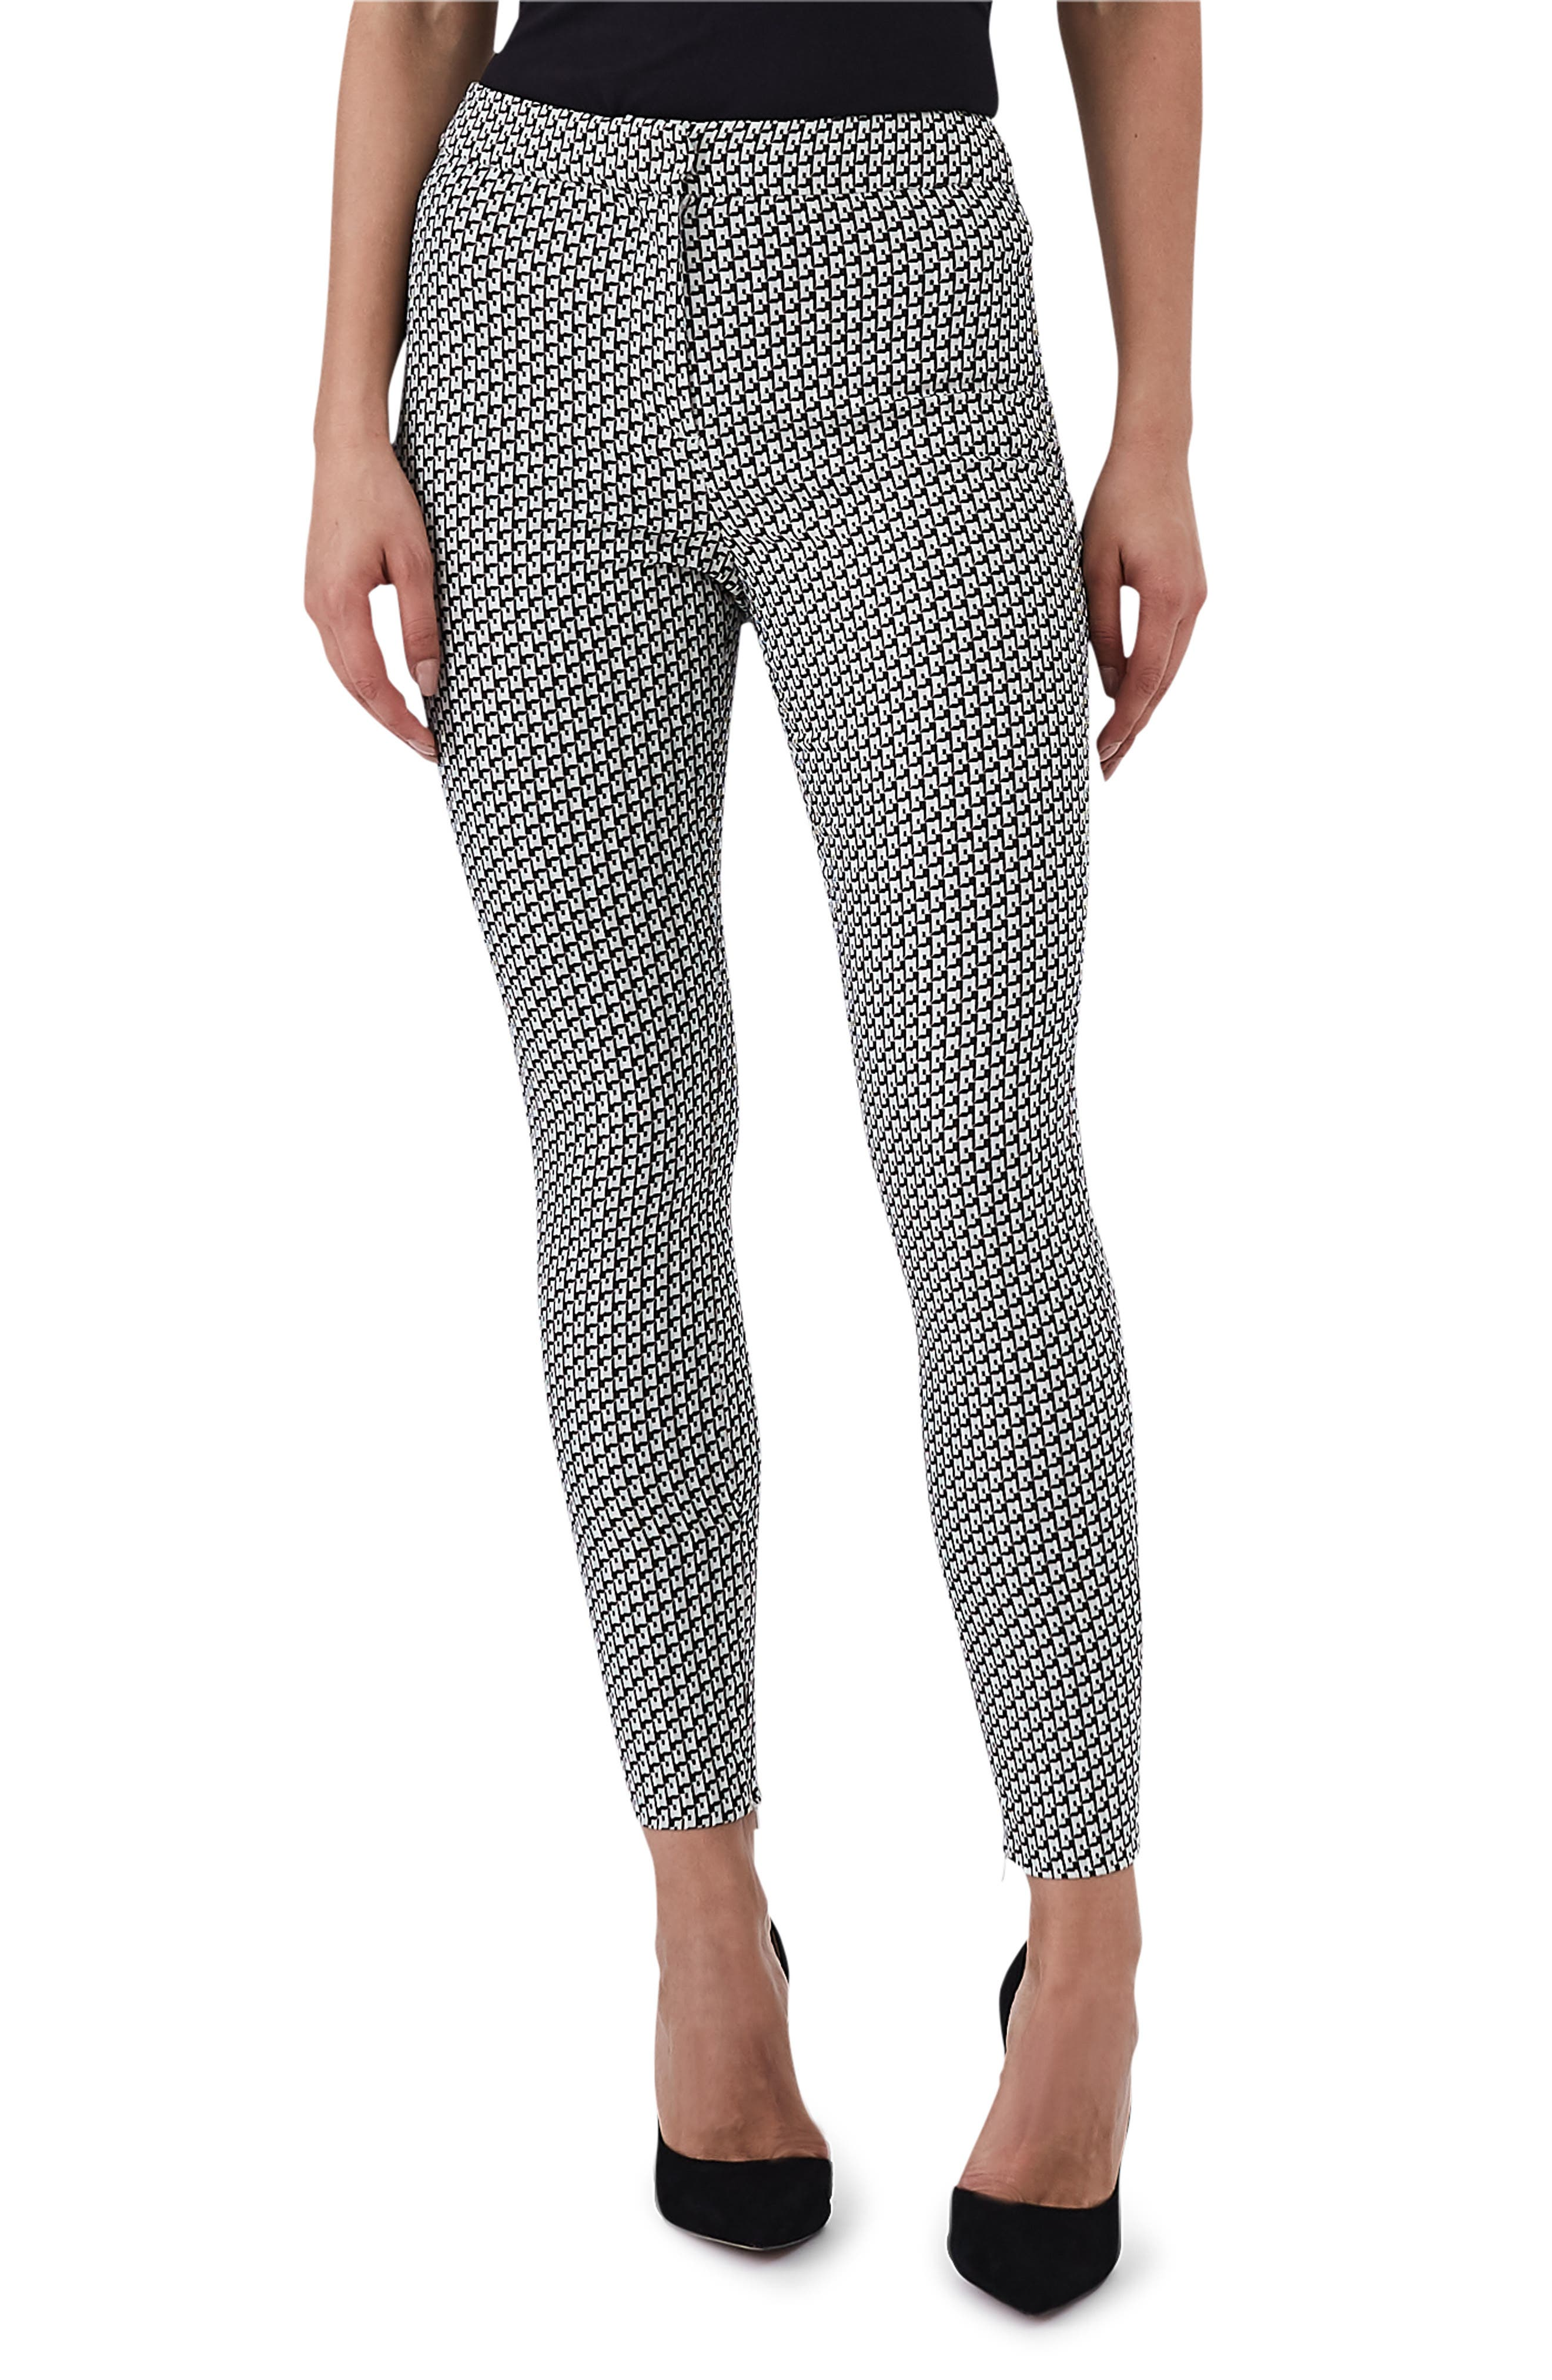 REISS Gio Printed Skinny Pants in Black/ Cream